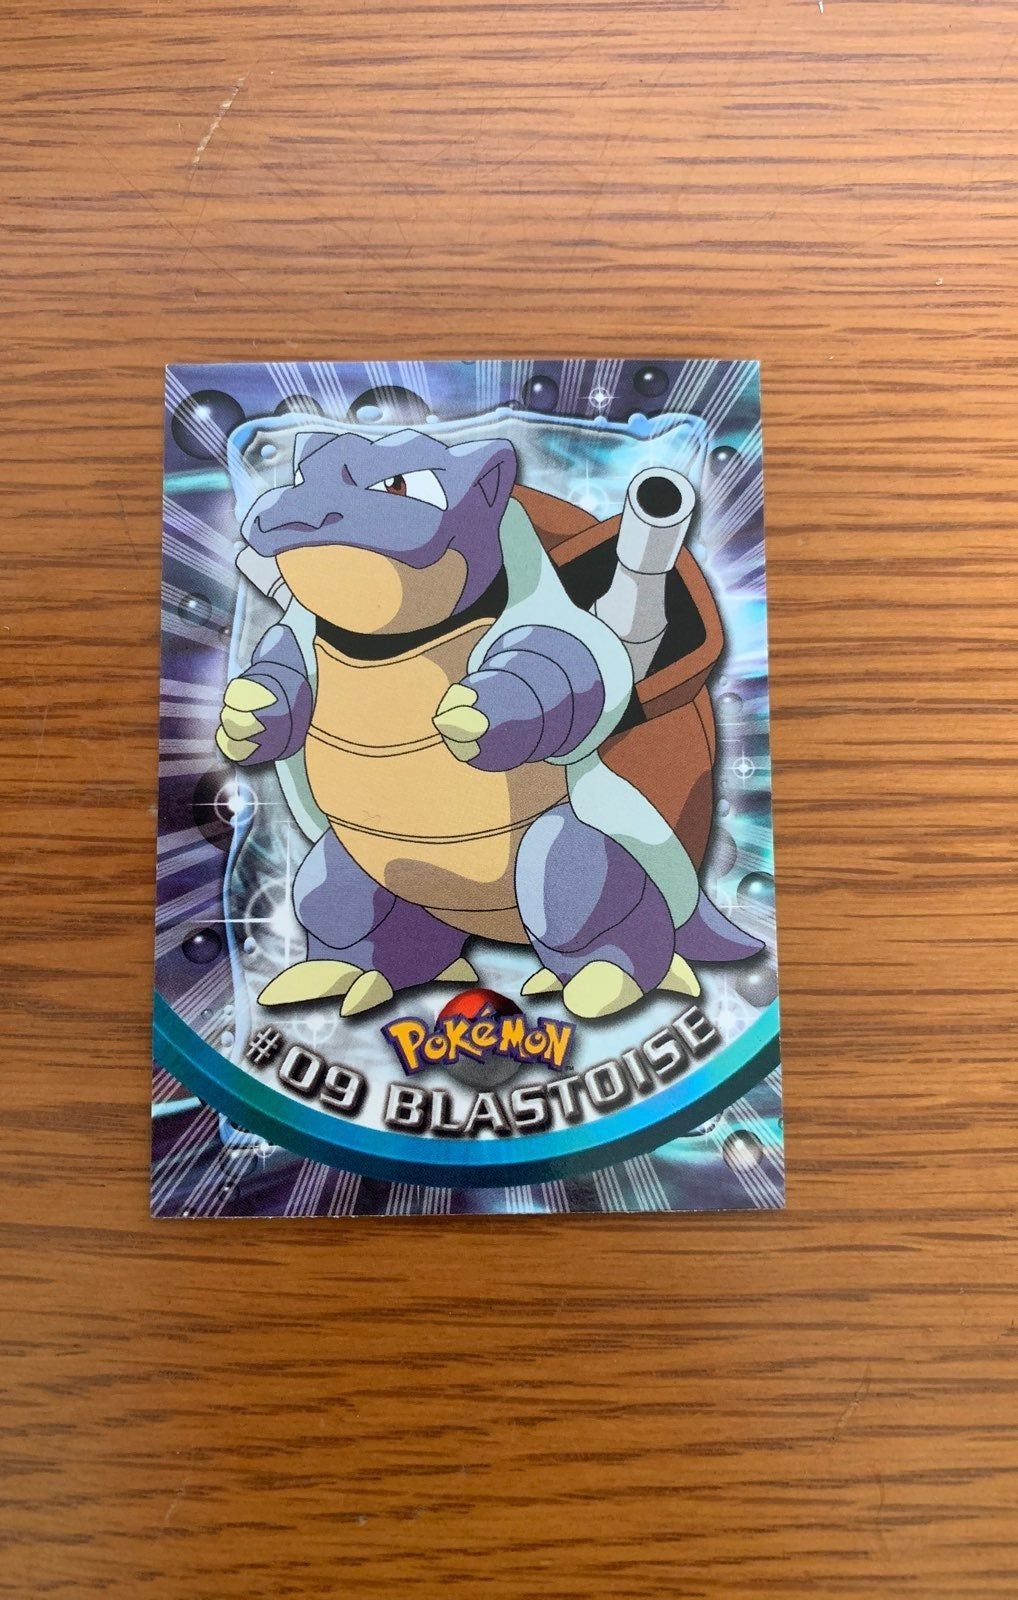 Blastoise topps card no creases or bends really good